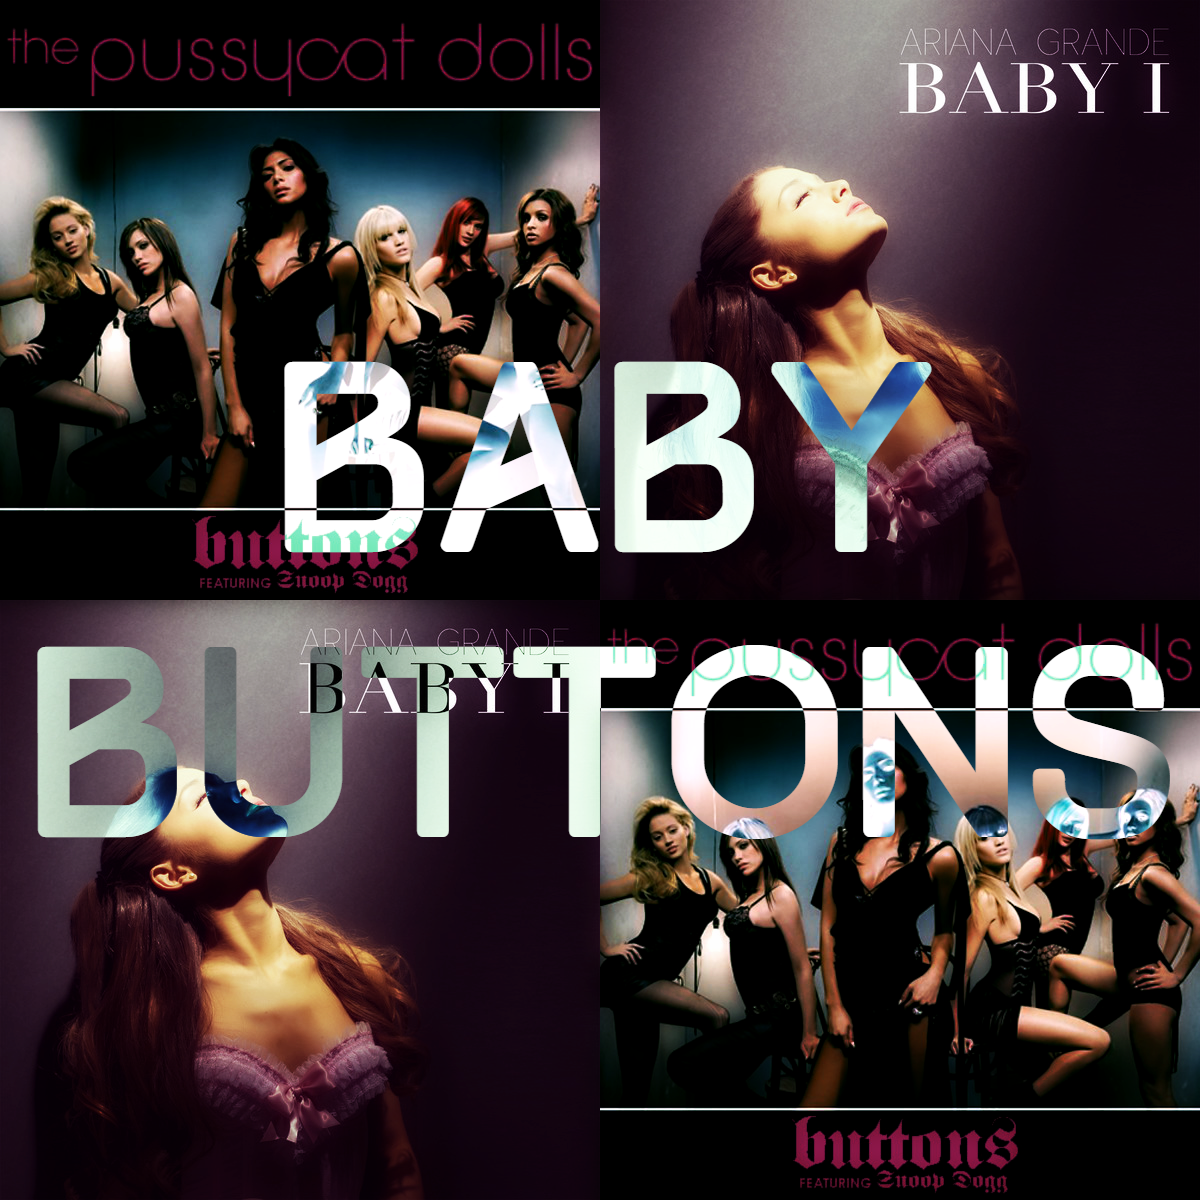 Pussycat Dolls ft. Snoop Dogg vs. Ariana Grande - Baby Buttons (SimGiant Mash Up)